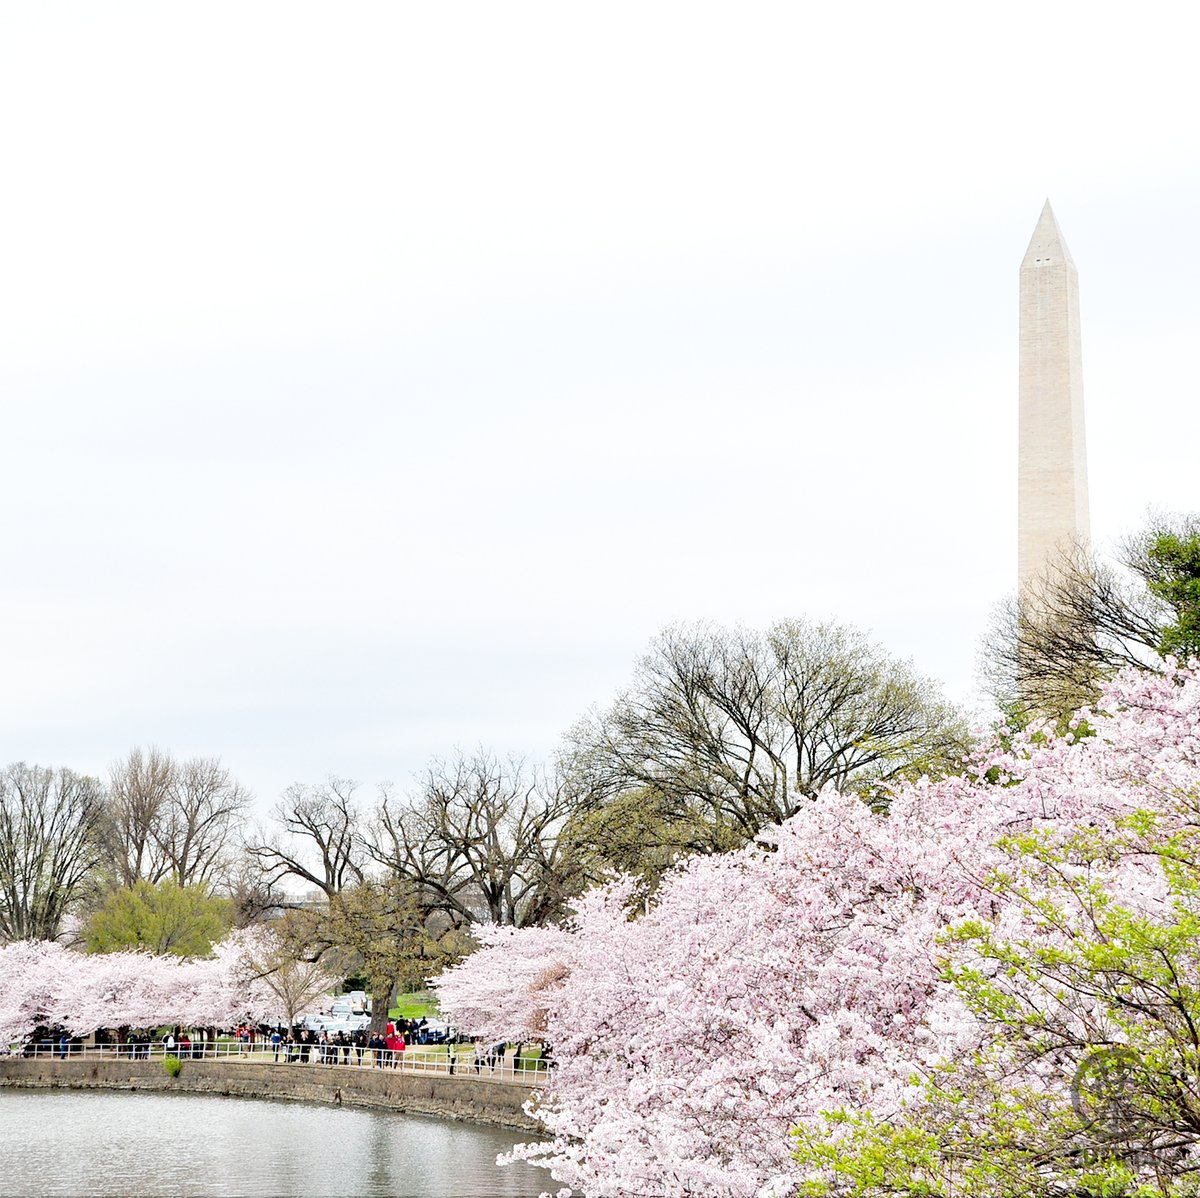 With the pandemic outbreak, a lot of us are restricted from going out to view these blossoms, including us. So we are just admiring the pictures we have taken in the past. ----- #photography #tidalbasin #washingtonDC #cherryblossompic.twitter.com/SIdnNV7T04